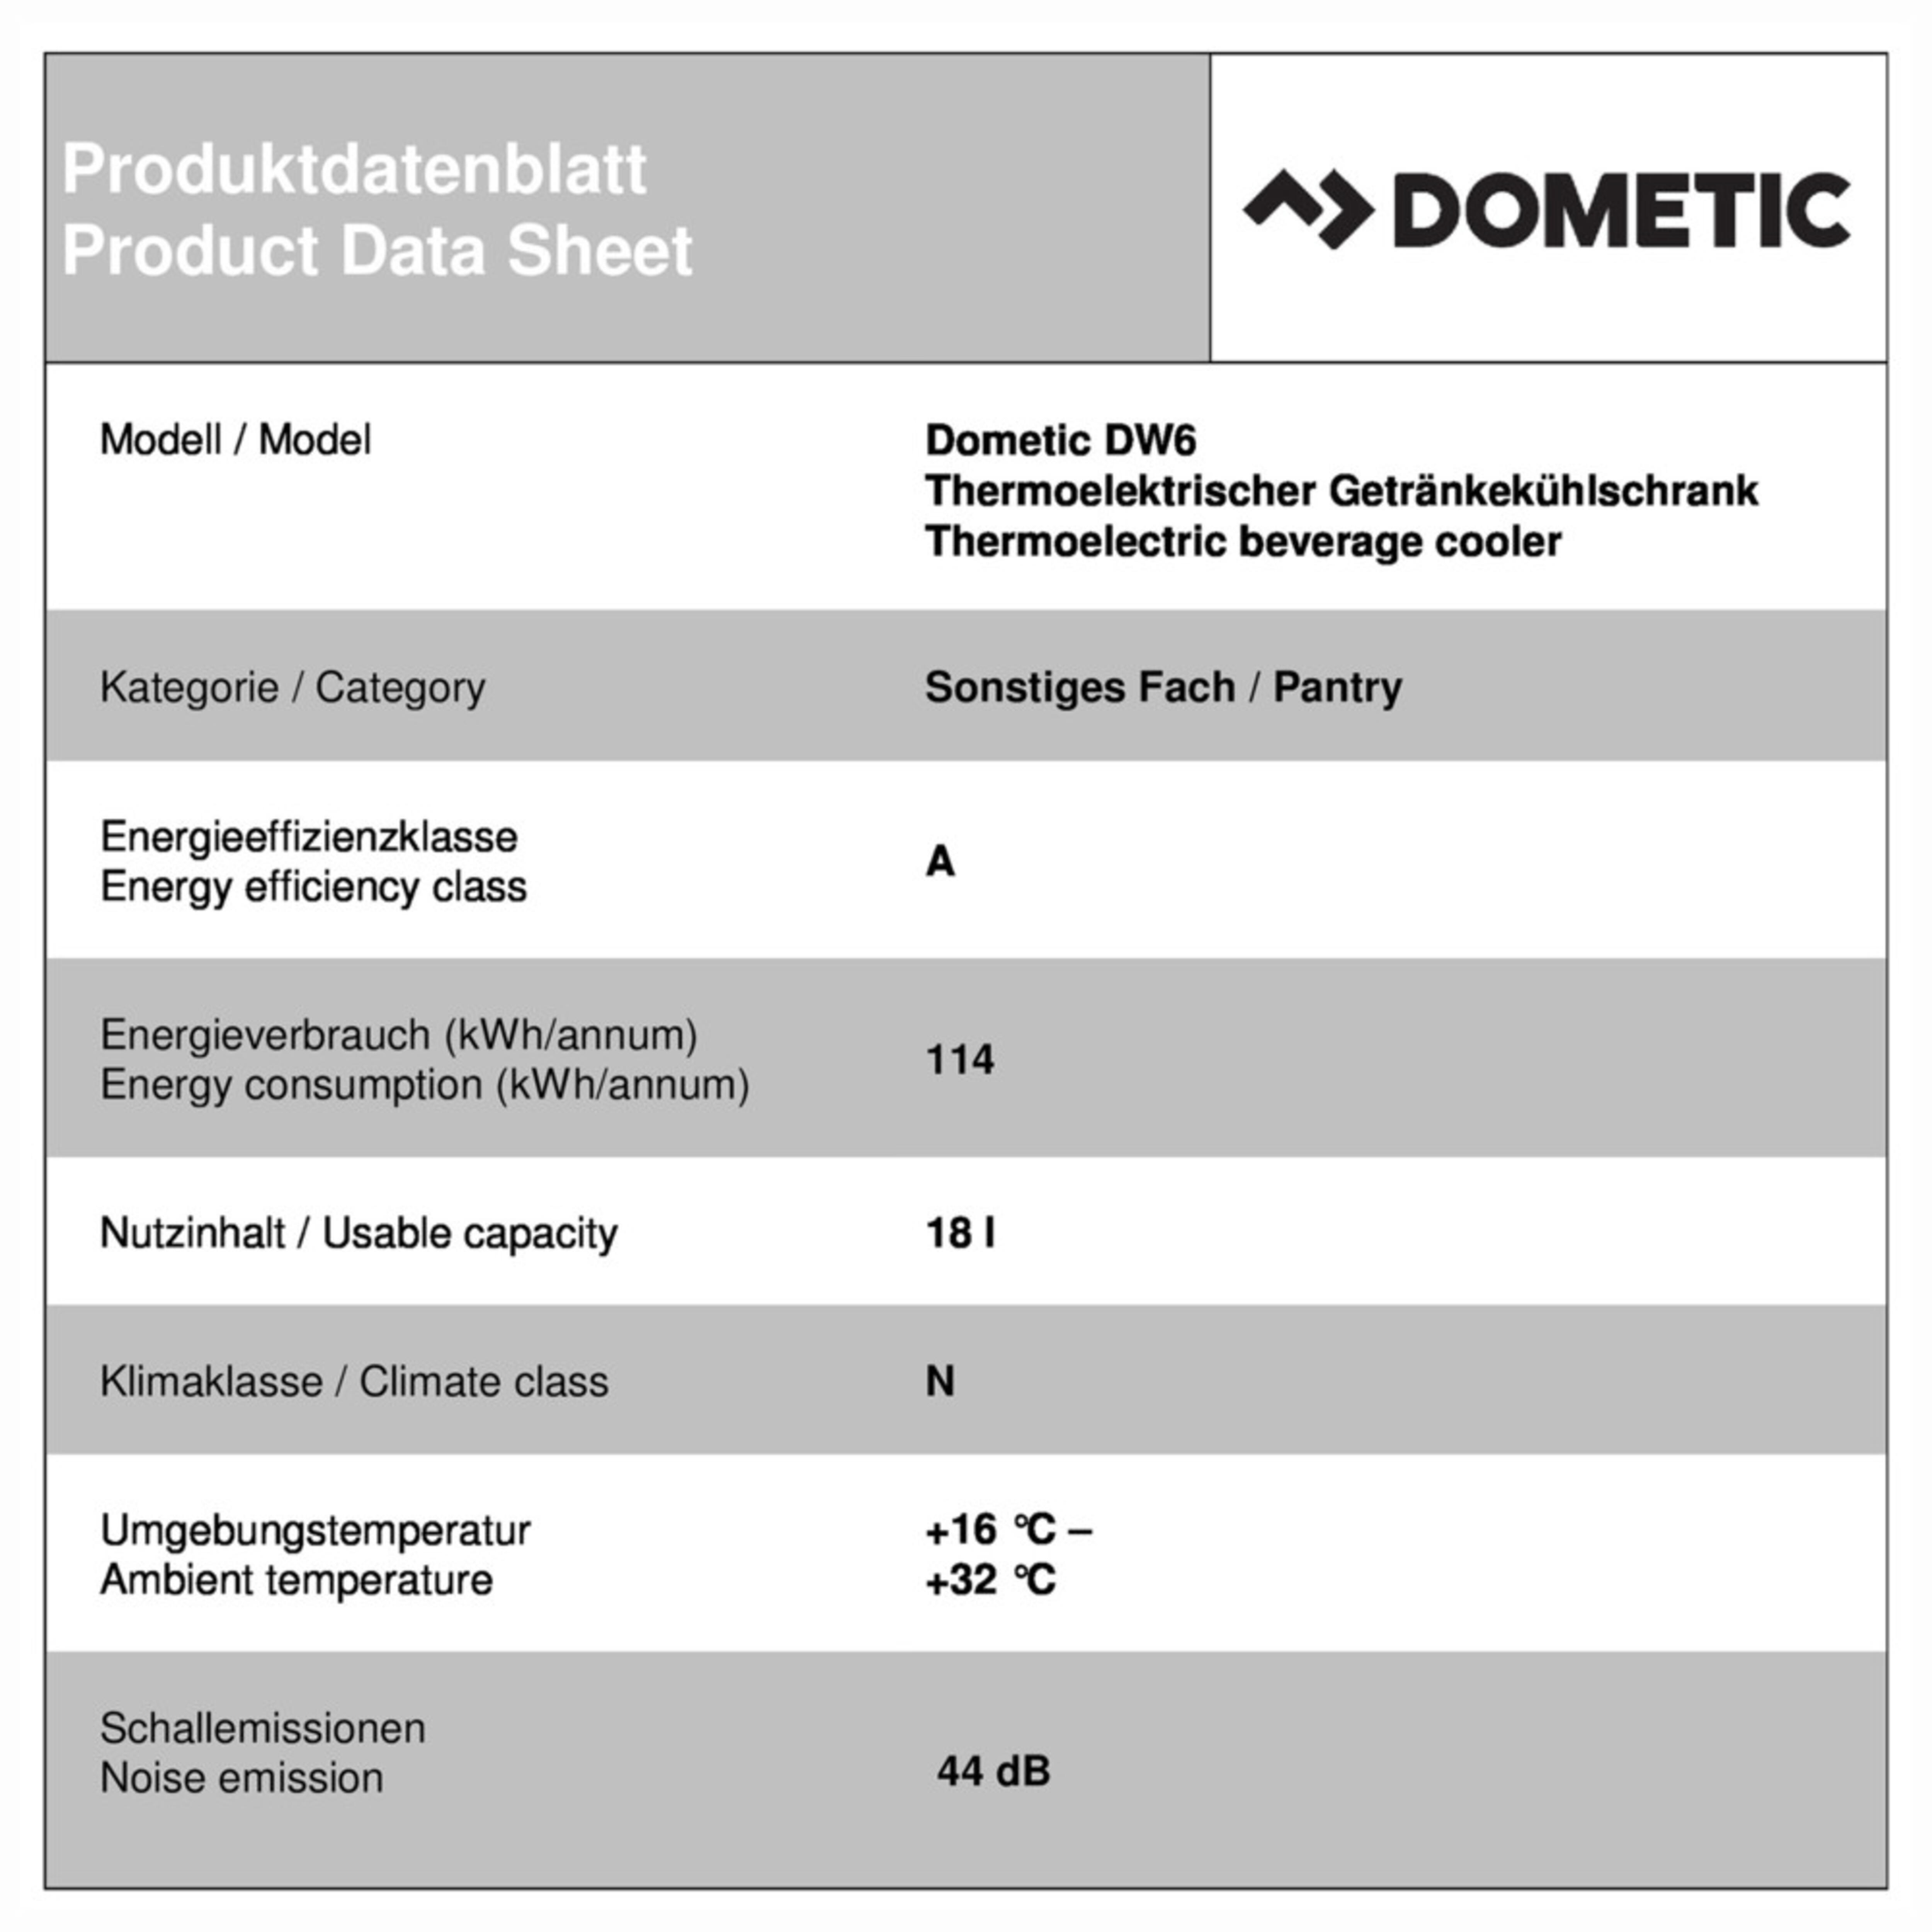 Dometic DW 6 Productkaart